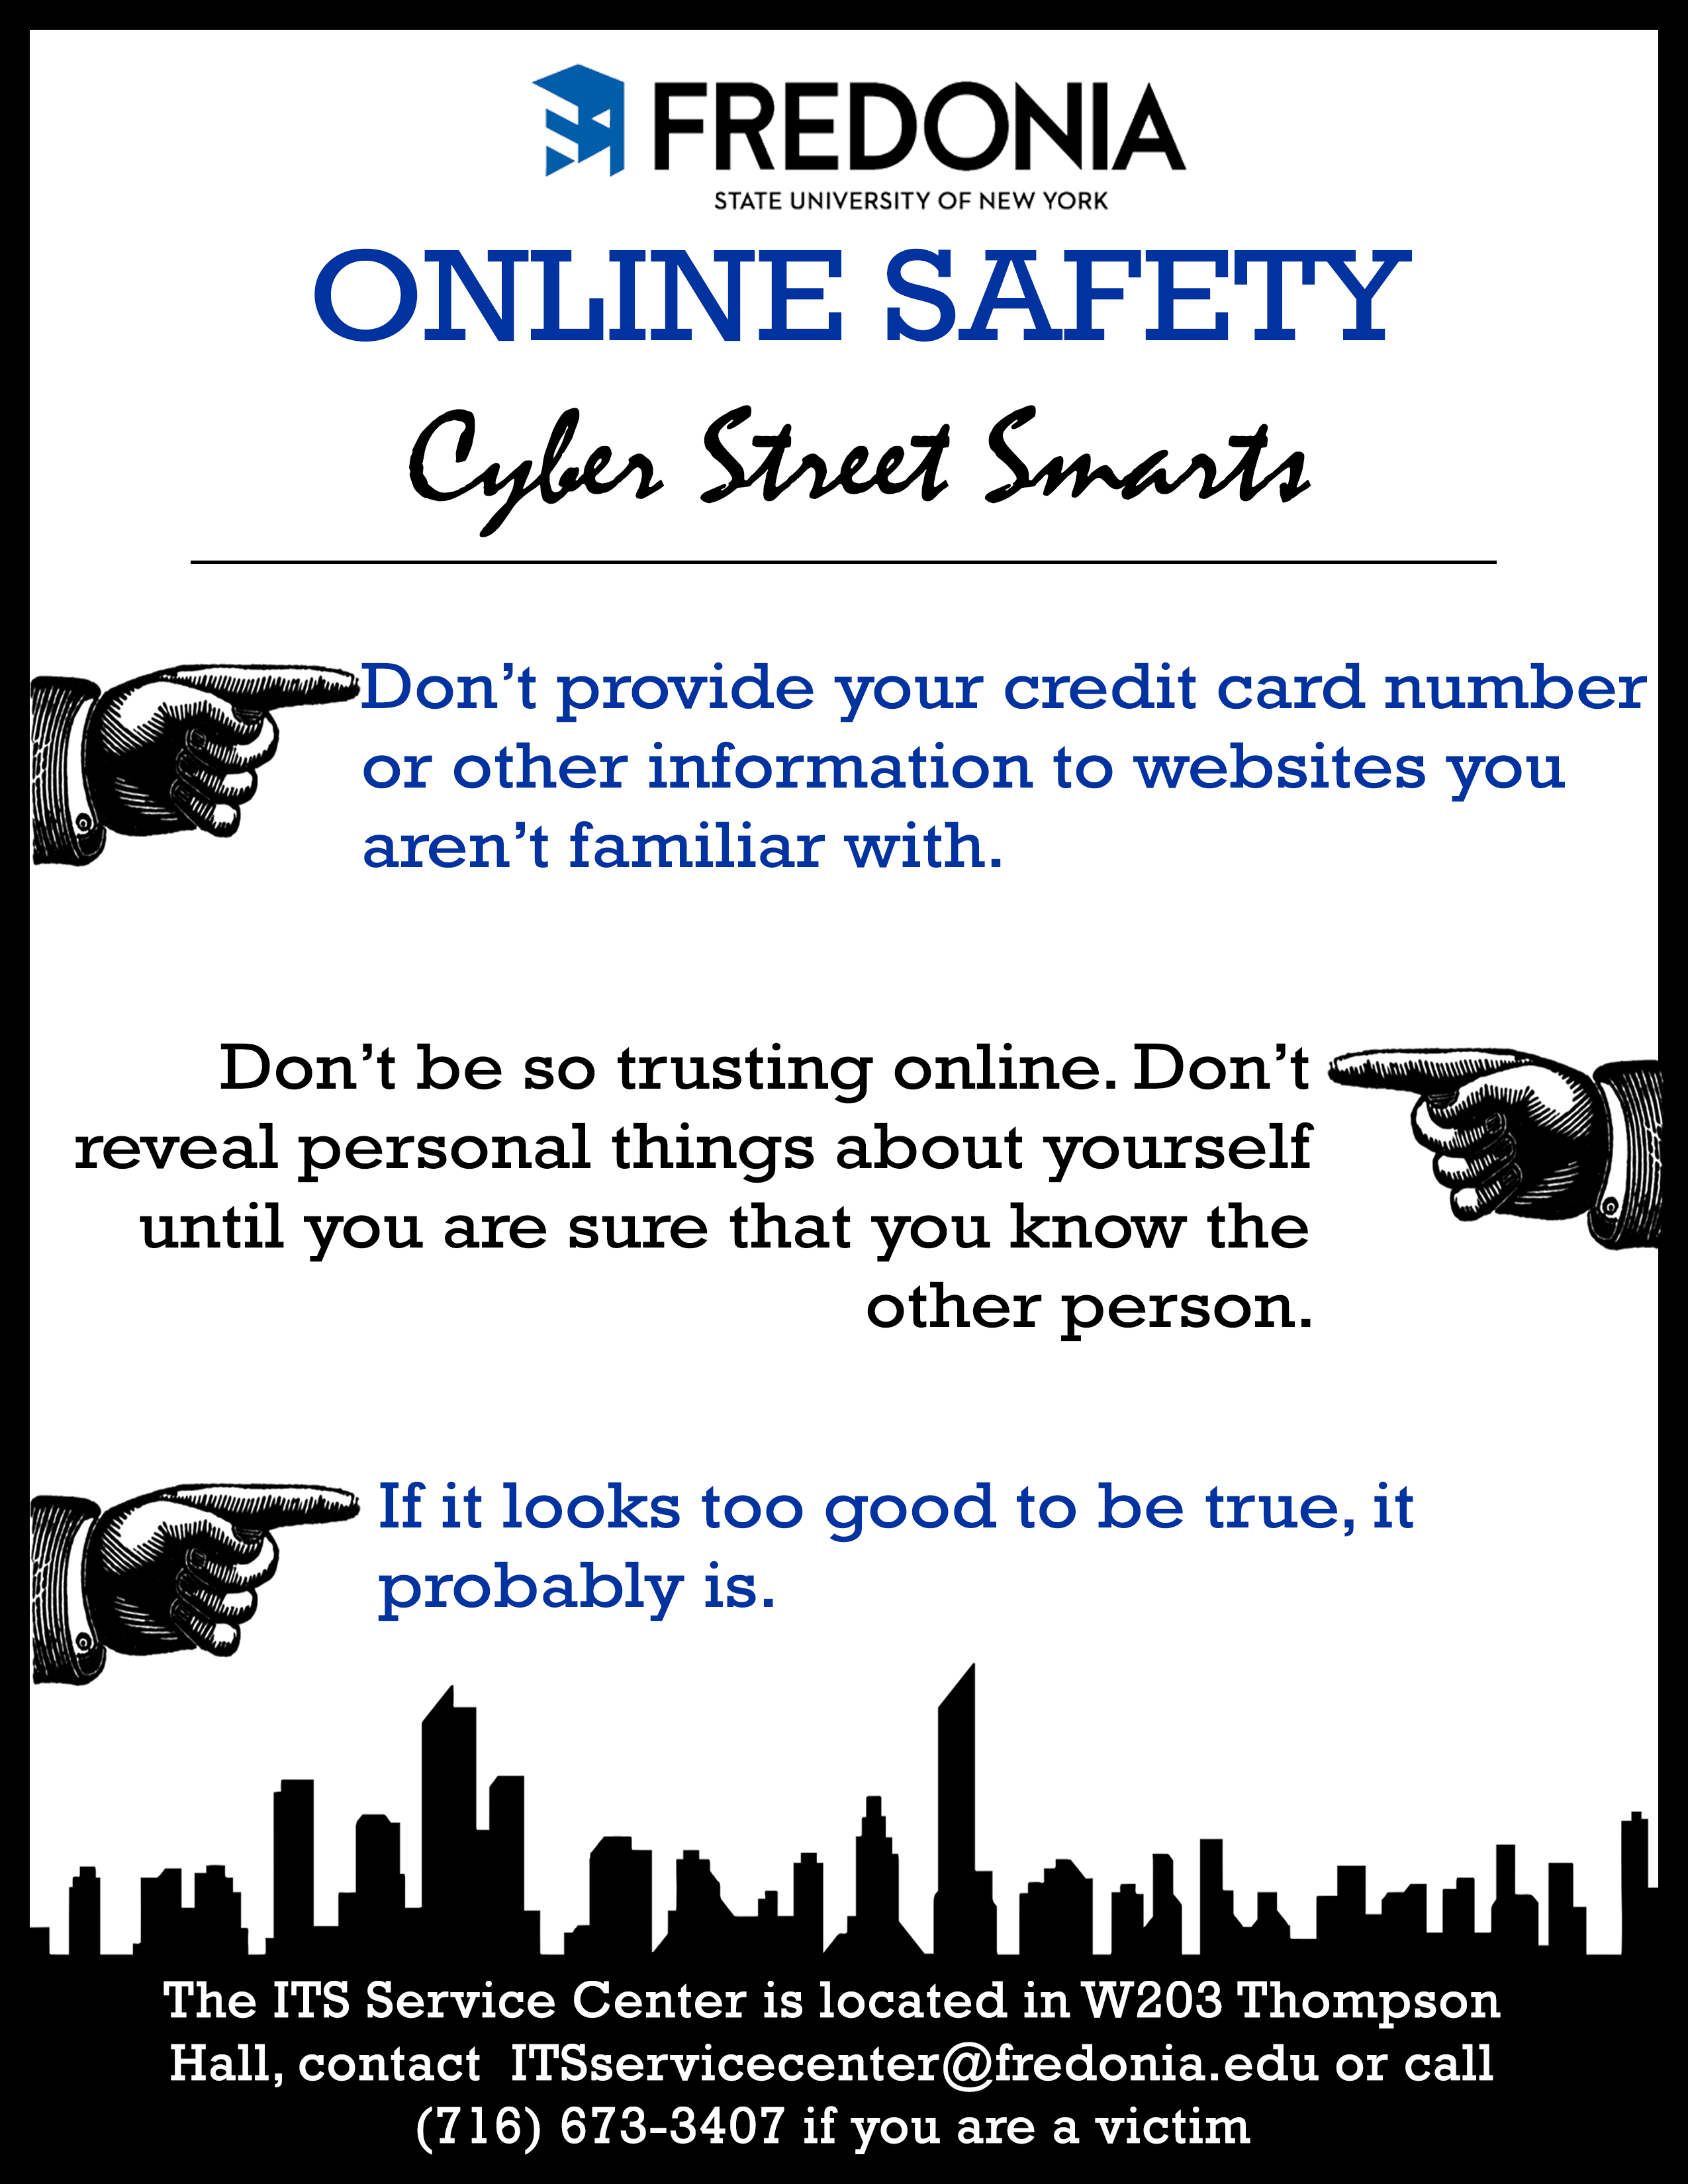 Cyber Street Smarts - if it looks too good to be true, it probably is!